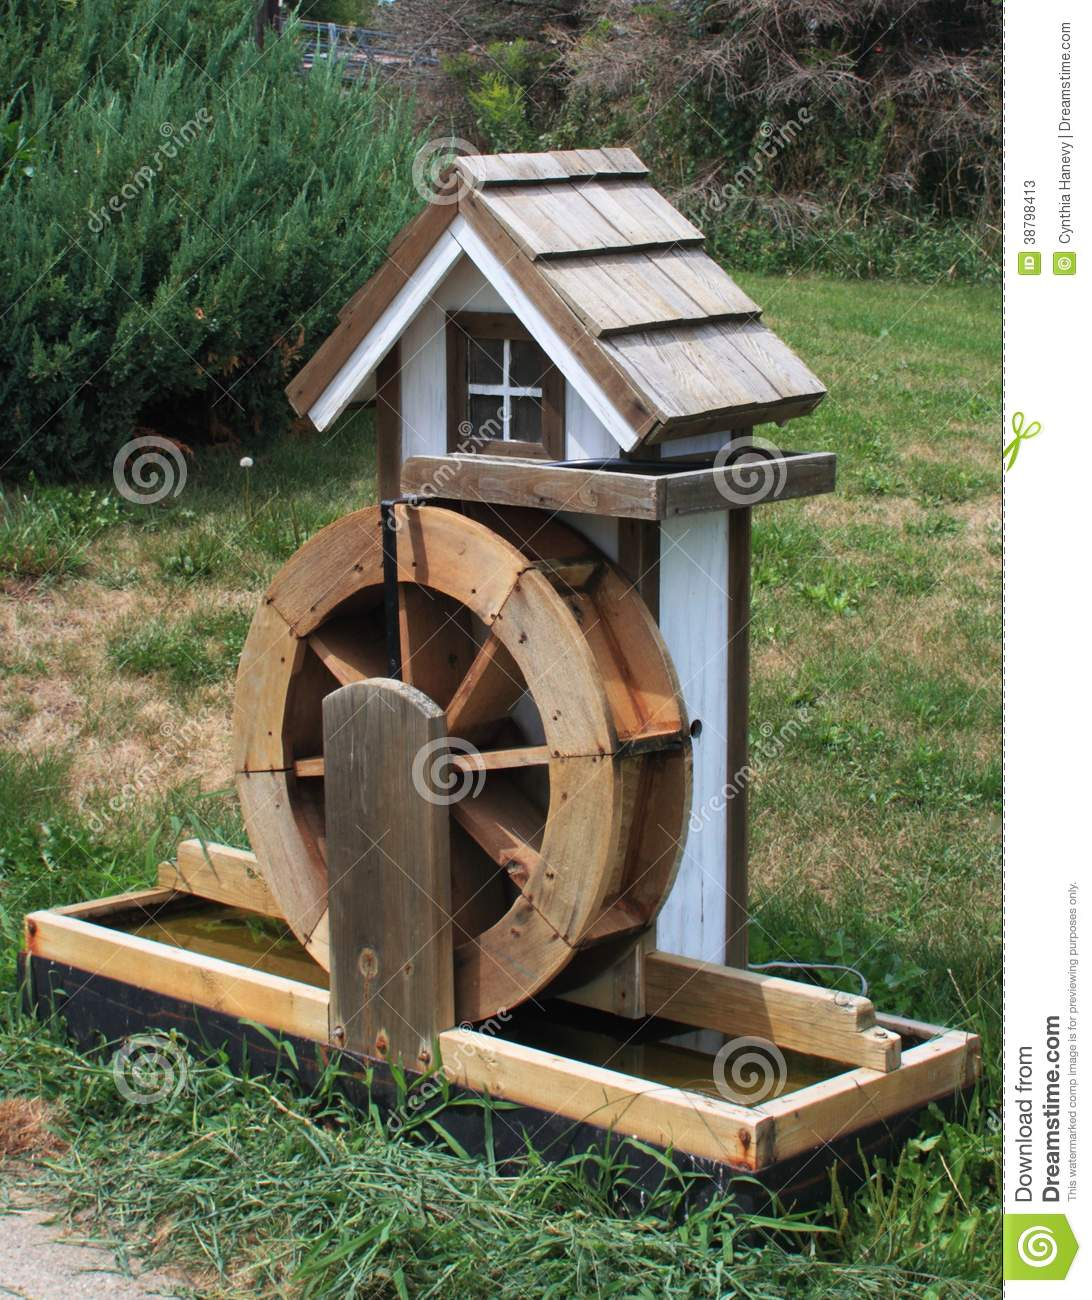 Miniature Water Wheel Stock Photo - Image: 38798413